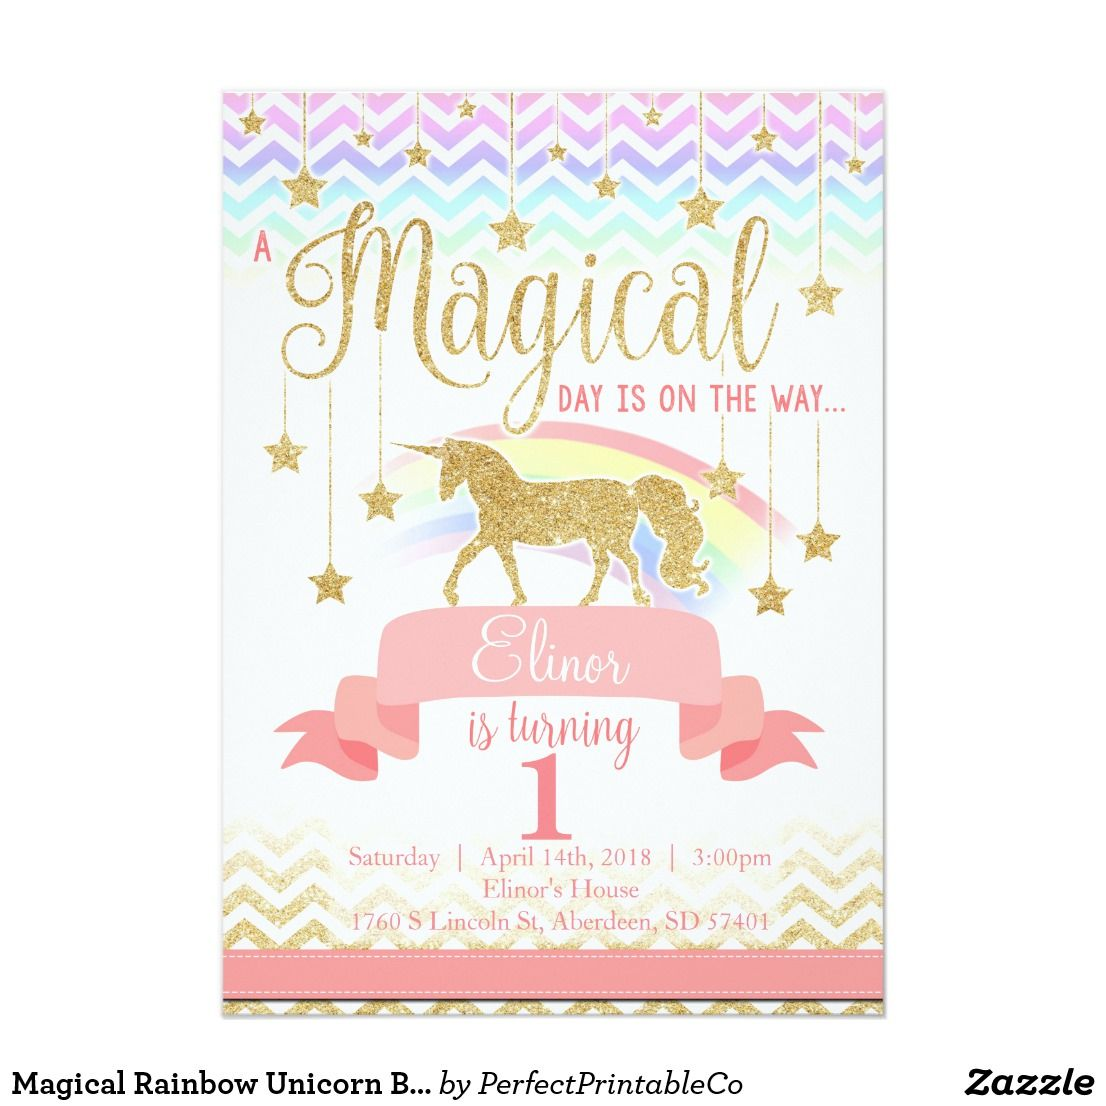 Magical Rainbow Unicorn Birthday Party Invitation | Unicorn birthday ...